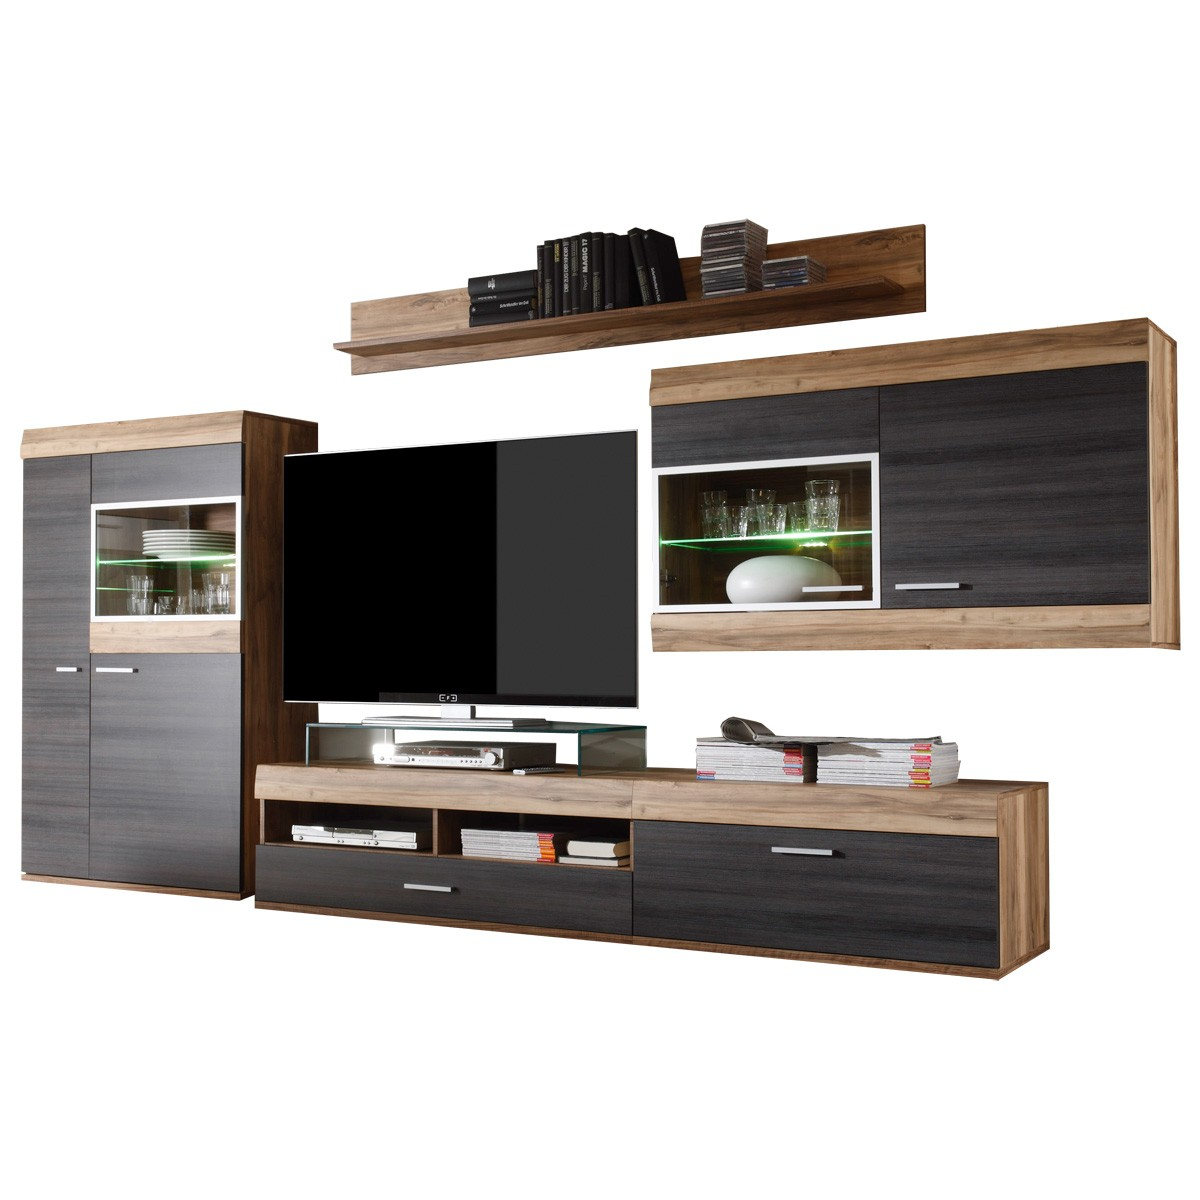 wohnwand anbauwand schrankwand in nu baum satin dunkelbraun. Black Bedroom Furniture Sets. Home Design Ideas